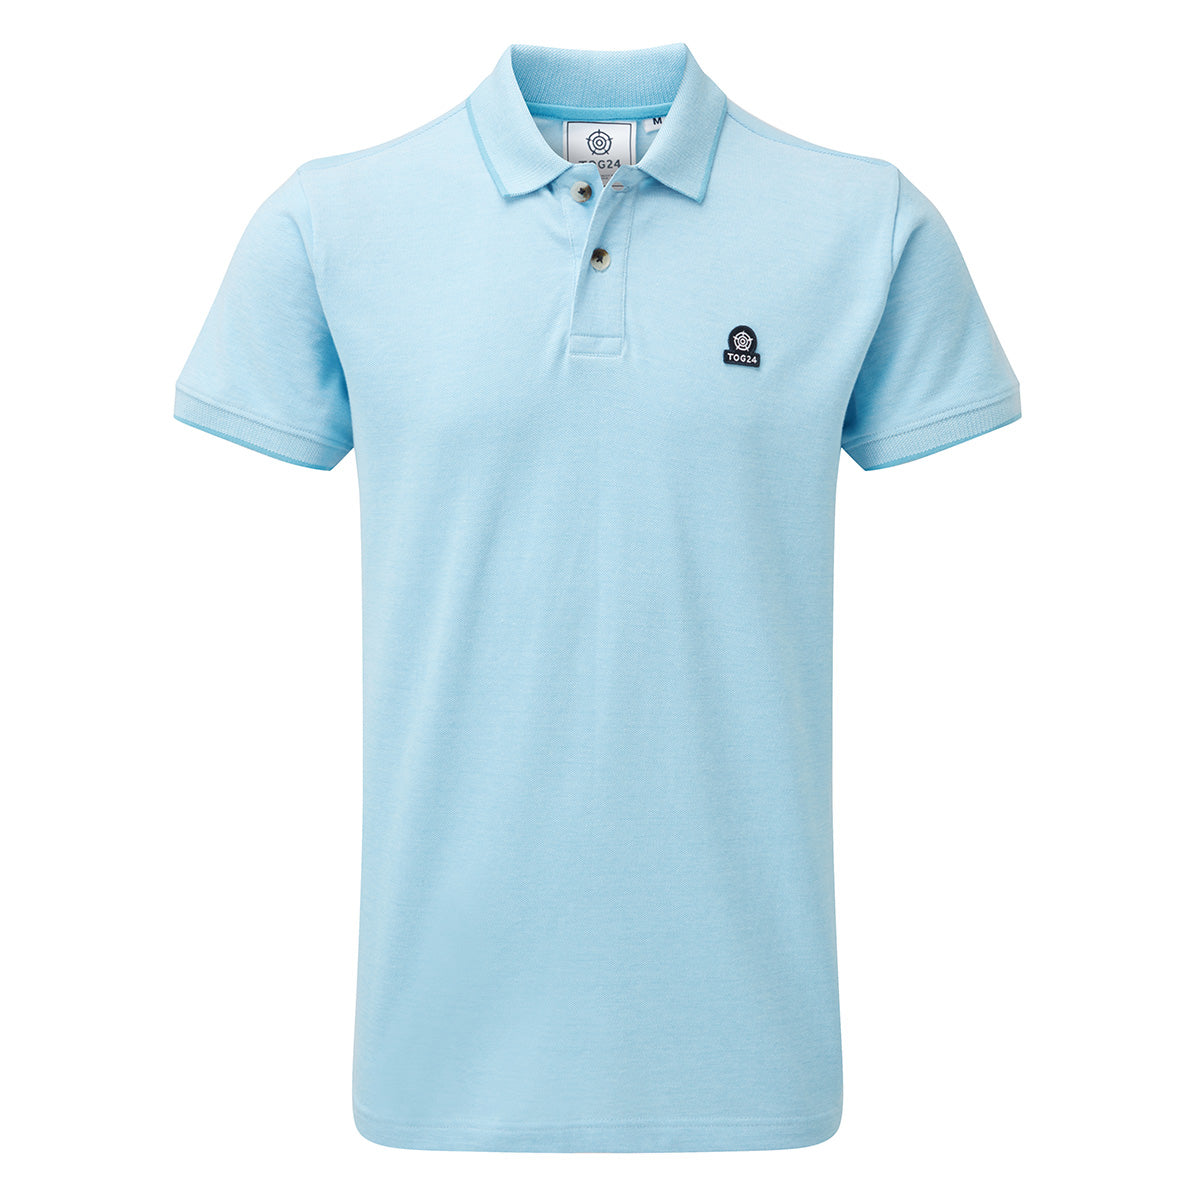 Patrick Mens Stripe Polo Shirt - Light Blue image 4